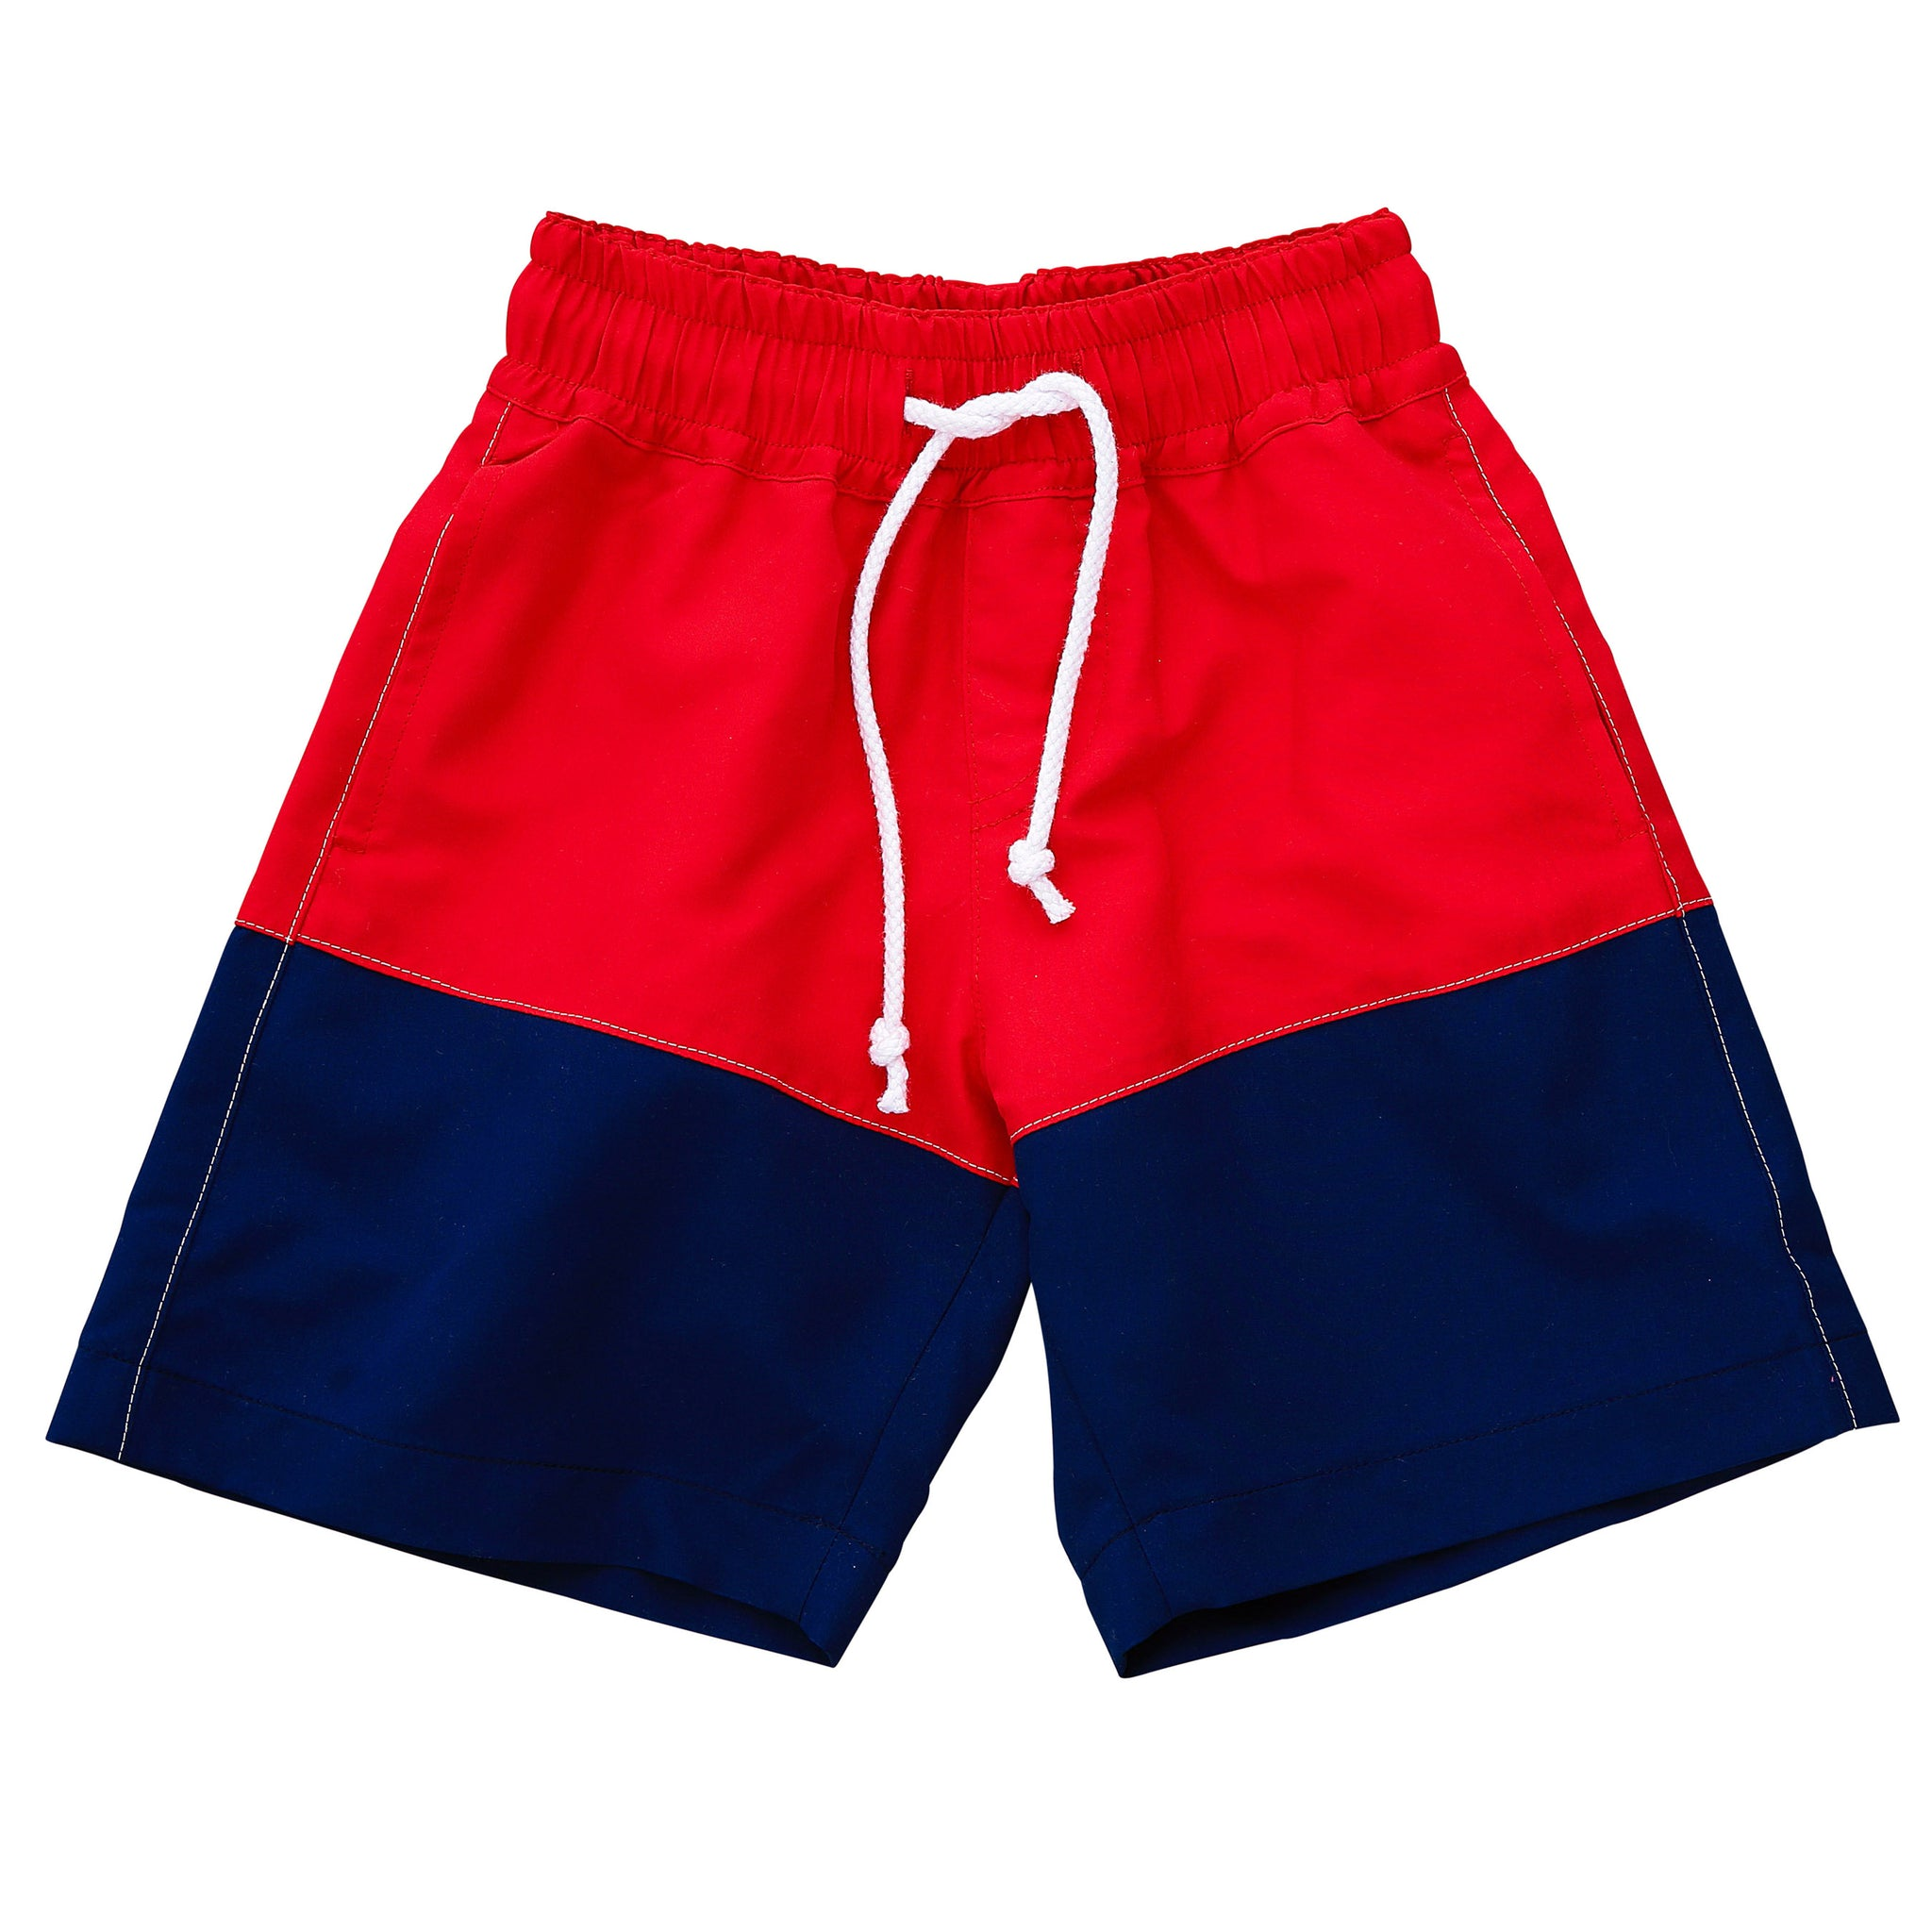 chris board shorts red navy color block